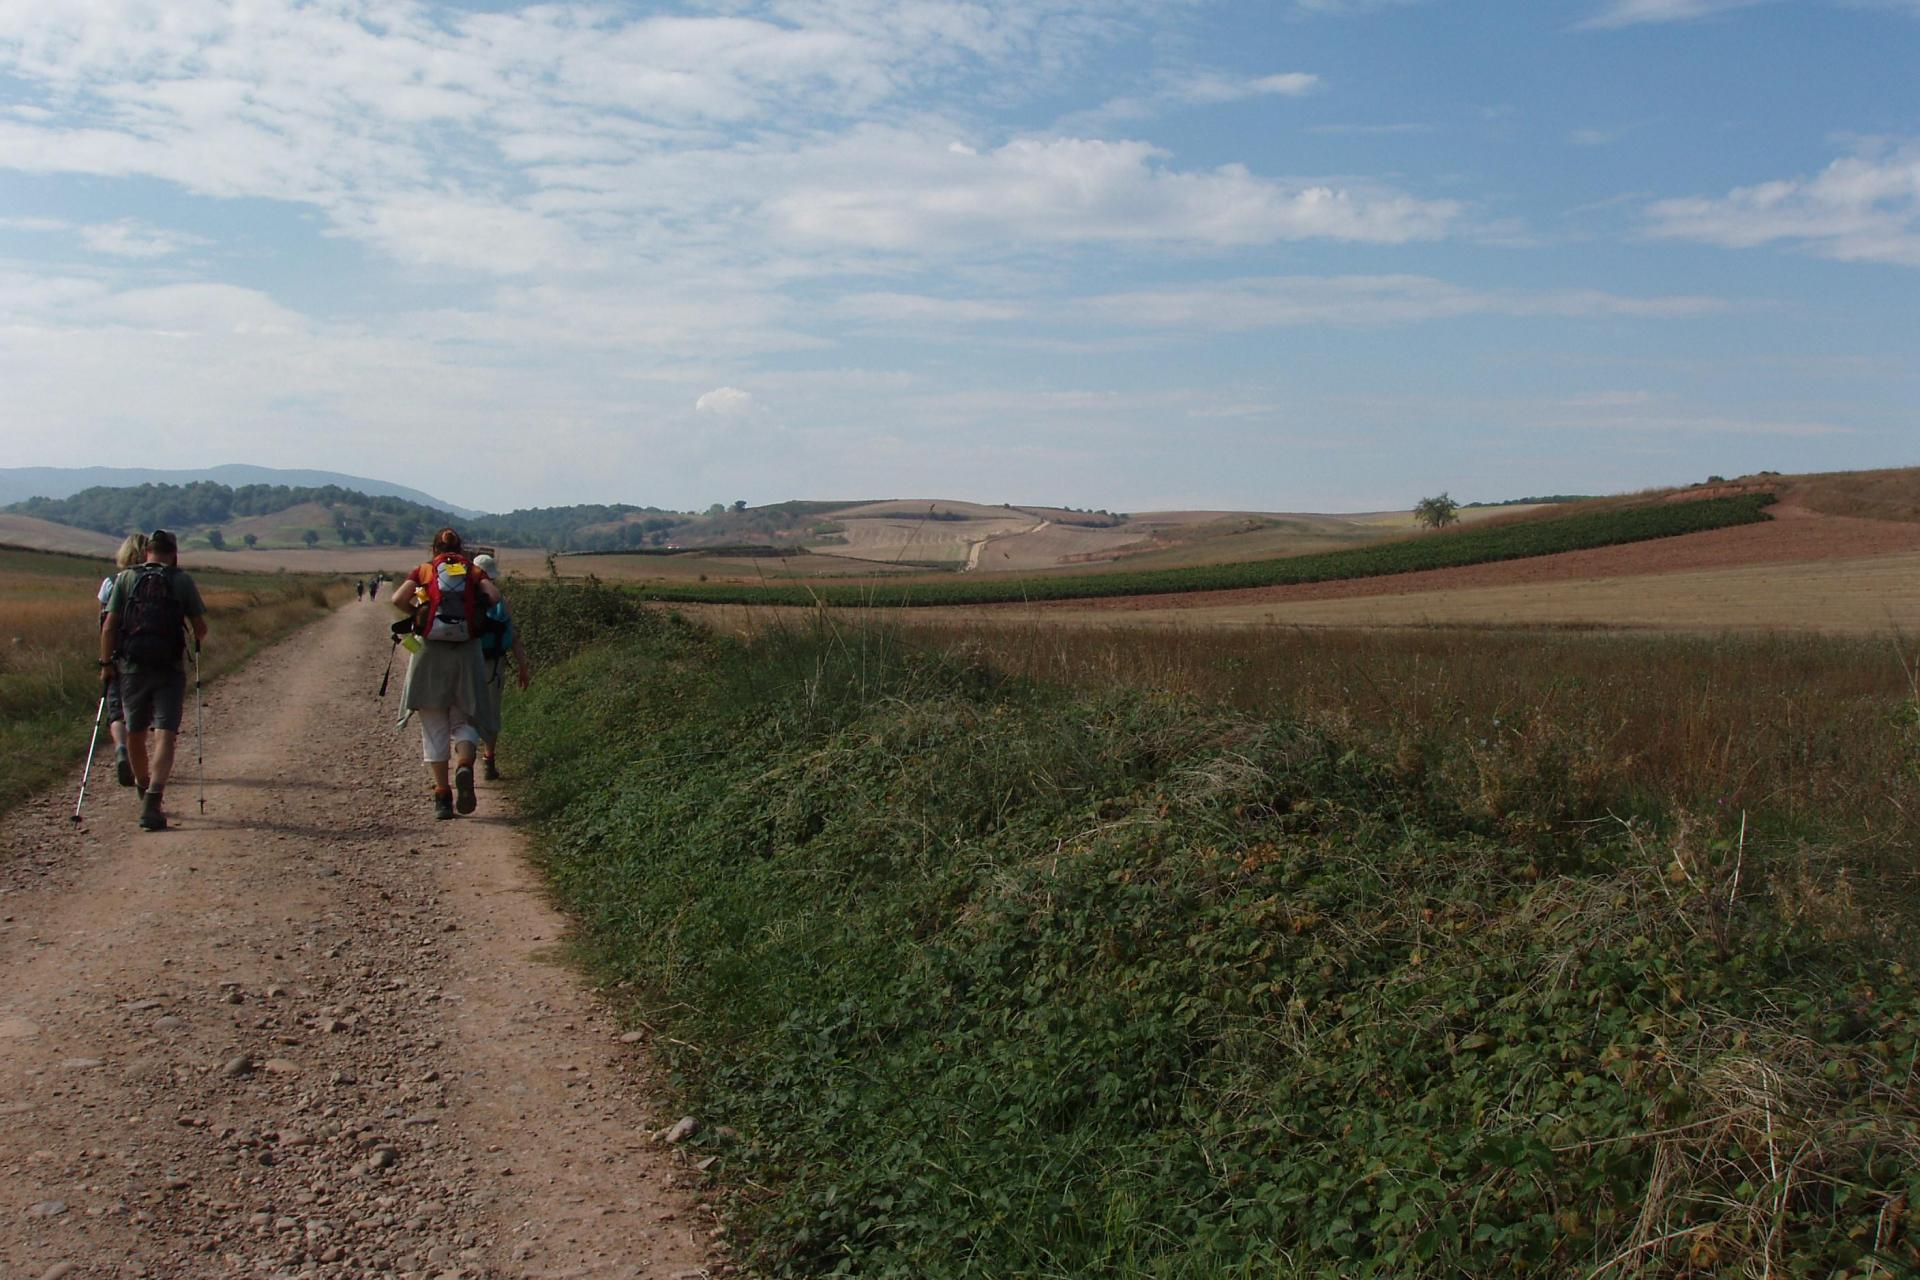 Self-guided hiking of El Camino de Santiago de Compostela, Spain: STAGE 2 Logroño To Burgos